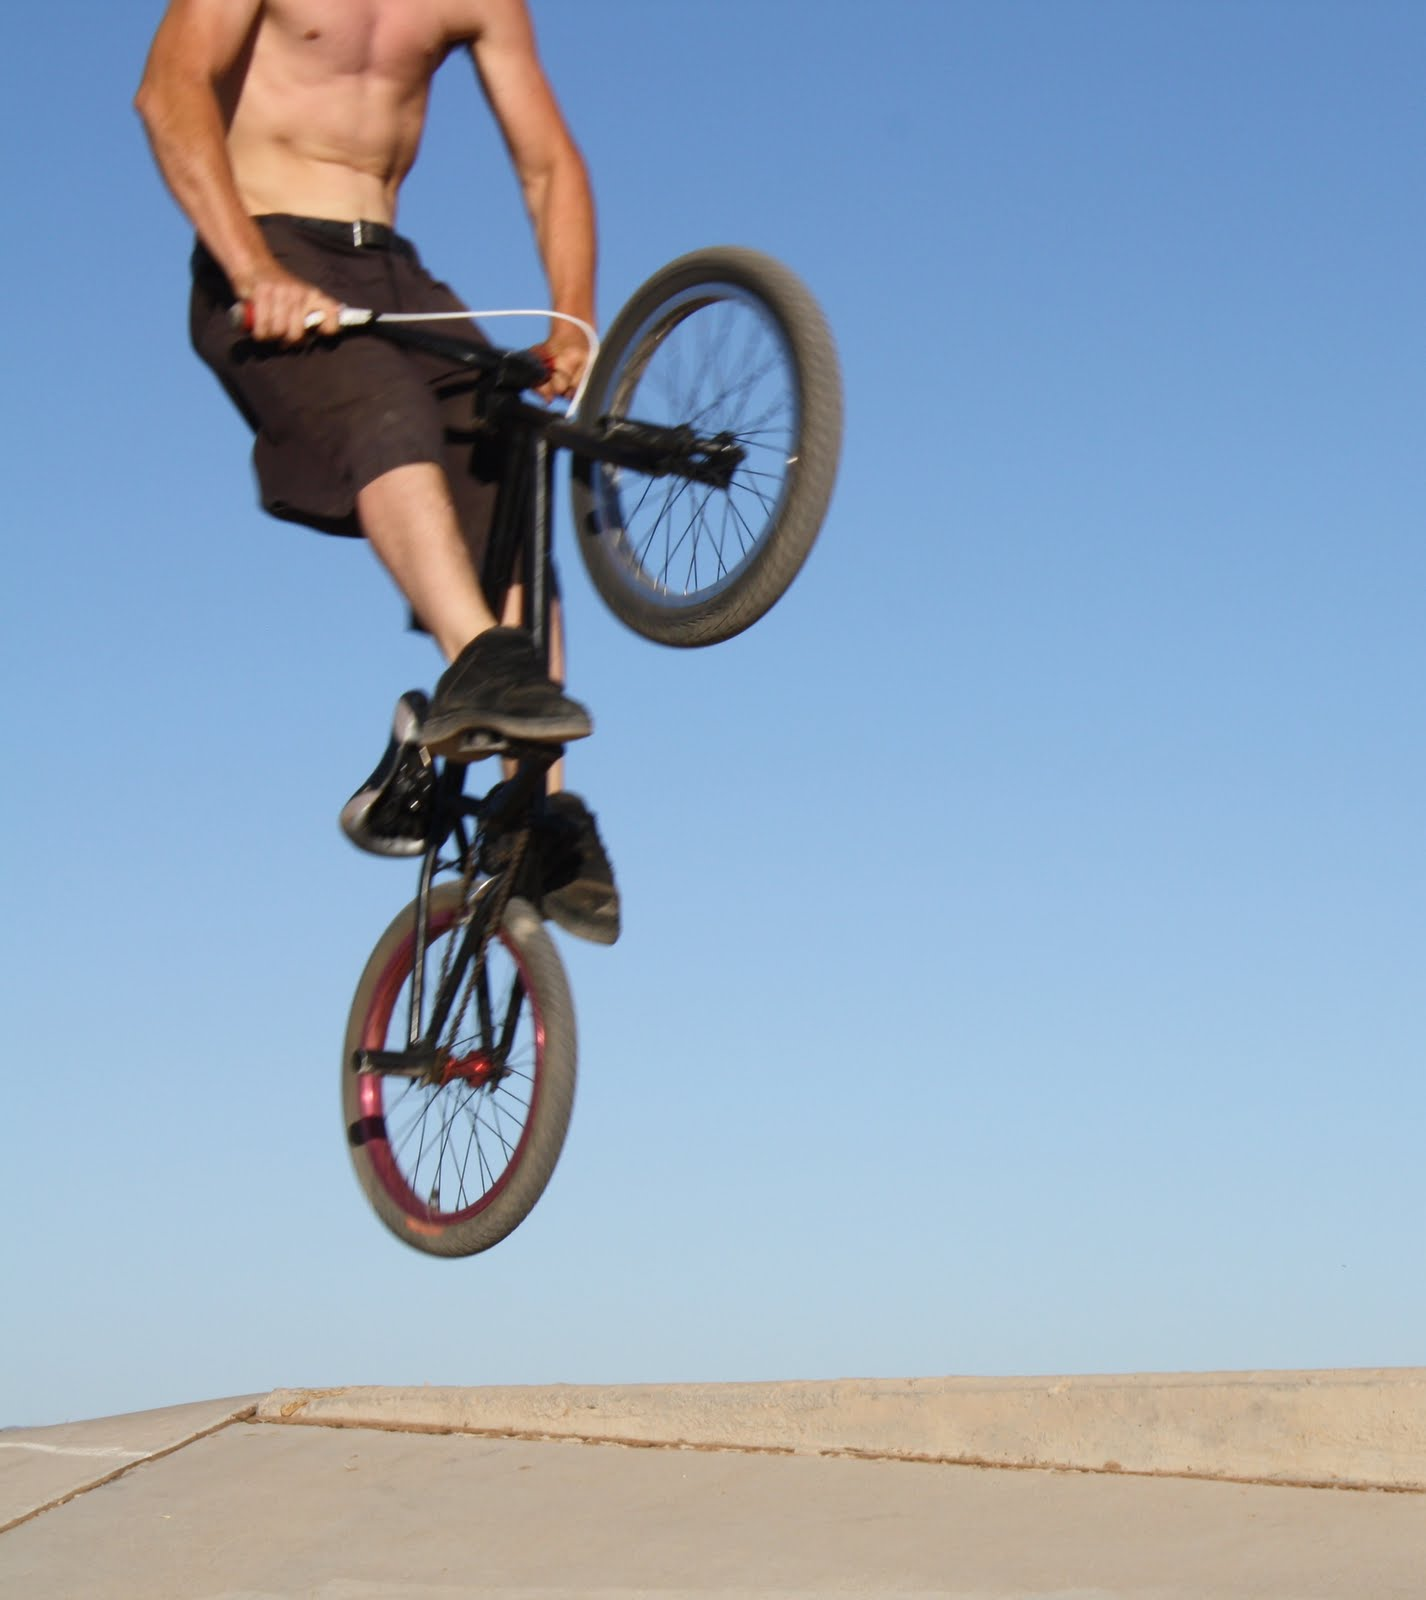 How to learn BMX tricks - Quora